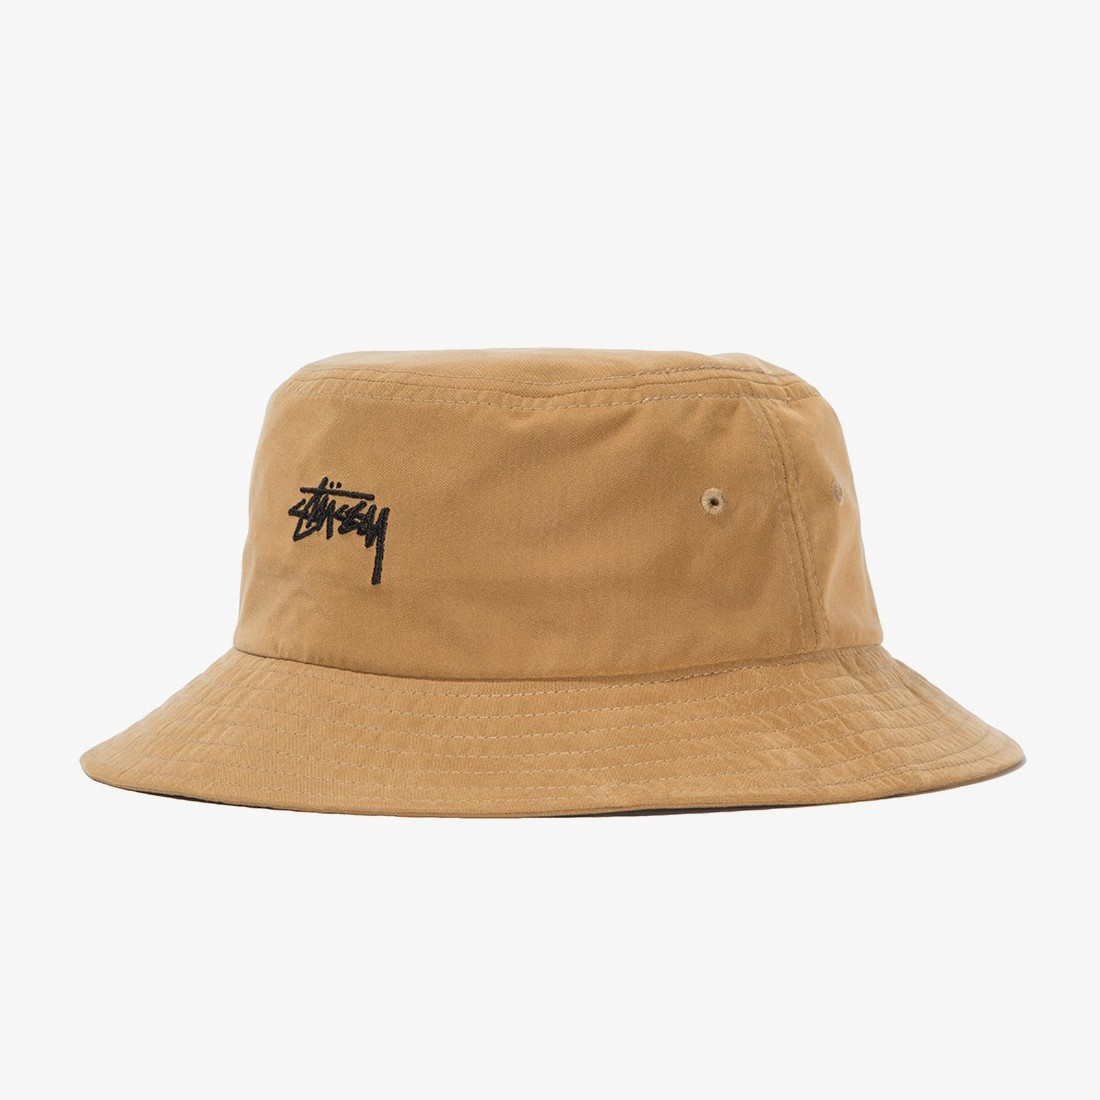 54fd16513f0 Stüssy Clothing and accessories onine